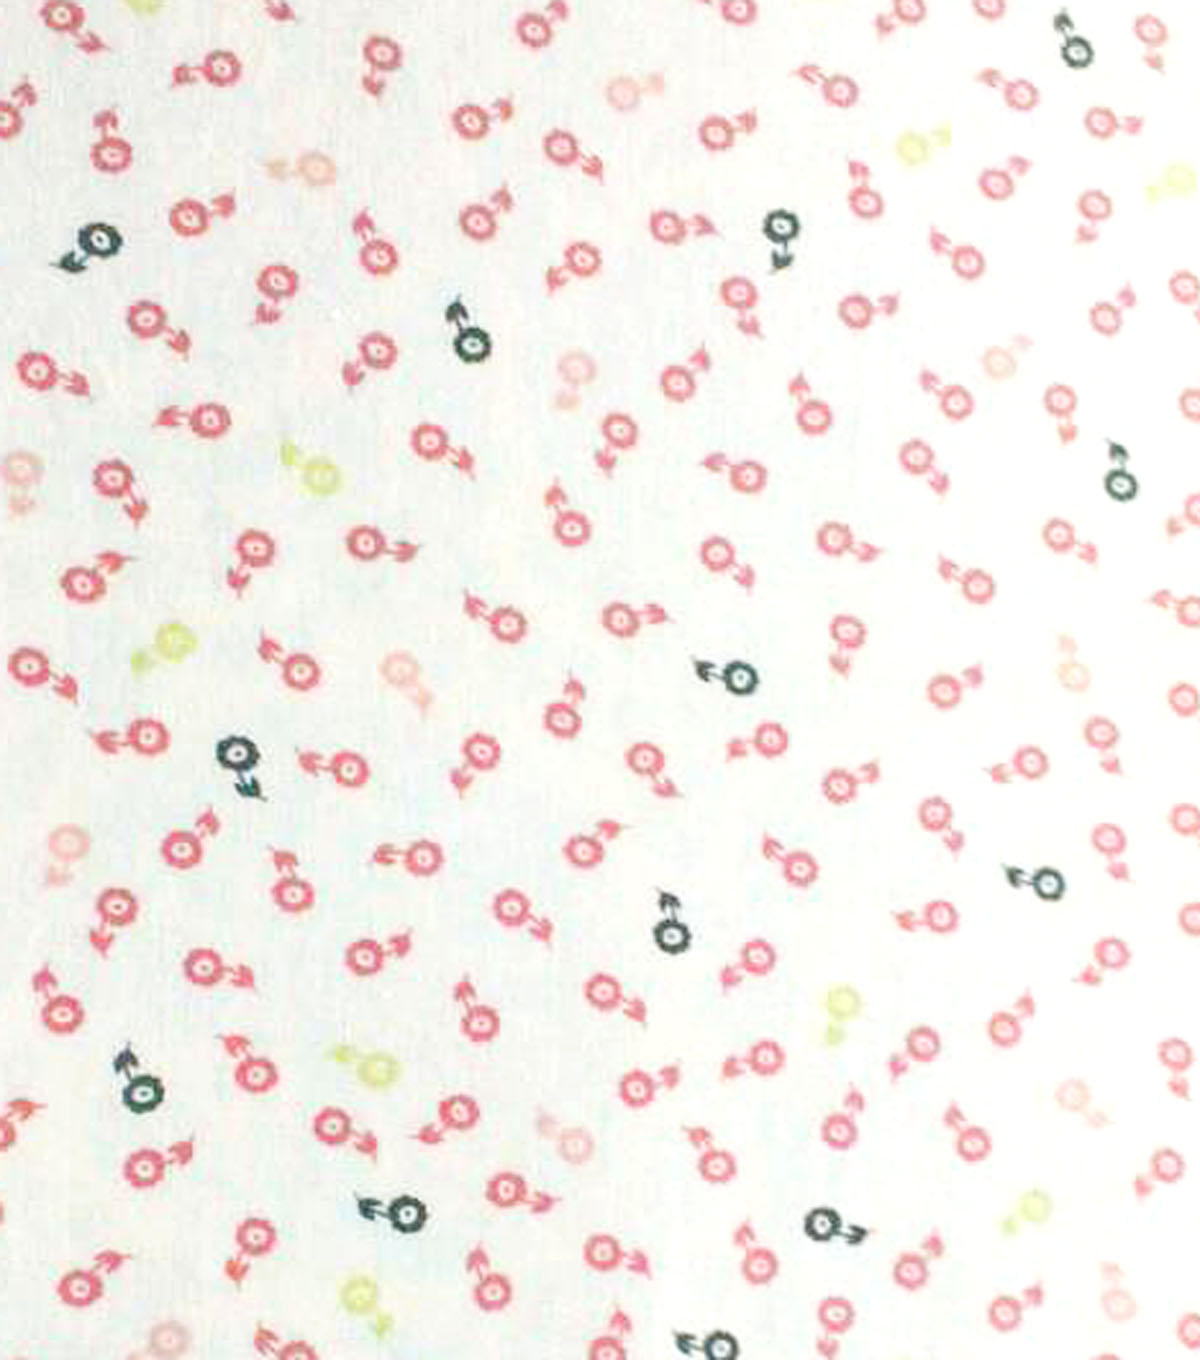 Keepsake Calico™ Cotton Fabric-Rebekah Ditsy Floral All Over Print